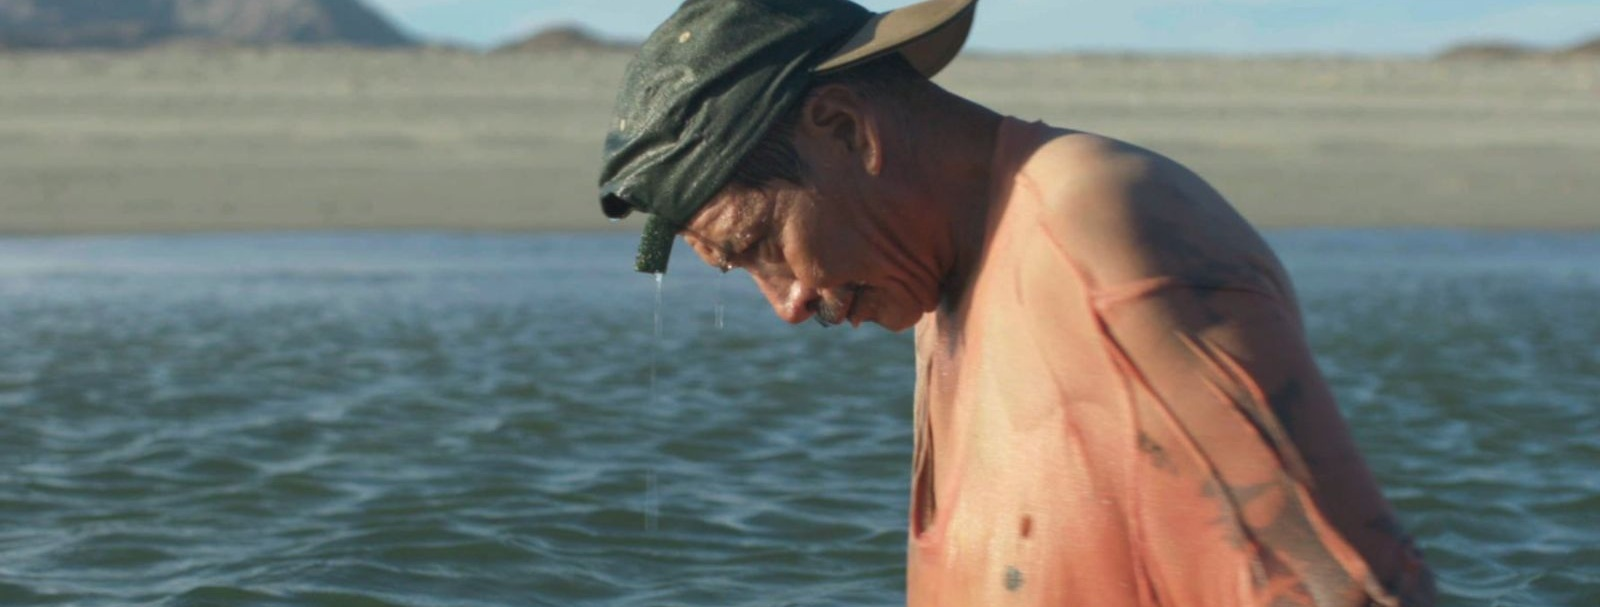 A WILD STREAM  ( Una corriente salvaje , Nuria Ibáñez, Mexico, 2018, 72 min. In Spanish with English subtitles. U.S. Premiere)  Buy Tickets   Winner of the Best Mexican Feature Documentary at the Morelia Film Festival, the third feature by Spanish-born director Nuria Ibáñez ( The Tightrope ,  The Naked Room ) follows Chilo and Omar, who seem to be the only two men on earth. They live on a solitary beach in the desert-like landscape of Baja California and fish to survive. Selected by  Film Comment  as one of the best undistributed films of 2018,  A Wild Stream  is an engrossing portrait of the human condition, as well as an unusual and quirky bromance.  Screening with  THE FORCES  ( Las   fuerzas , Paola Buontempo, Argentina, 2018, 18 min. In Spanish with English subtitles, North American Premiere)  Introduction by Paola Buontempo  This brilliant short documentary provides glimpses into the world of horse-racing, following young men and women on track to becoming jockeys.   Monday, February 25, 6:30pm